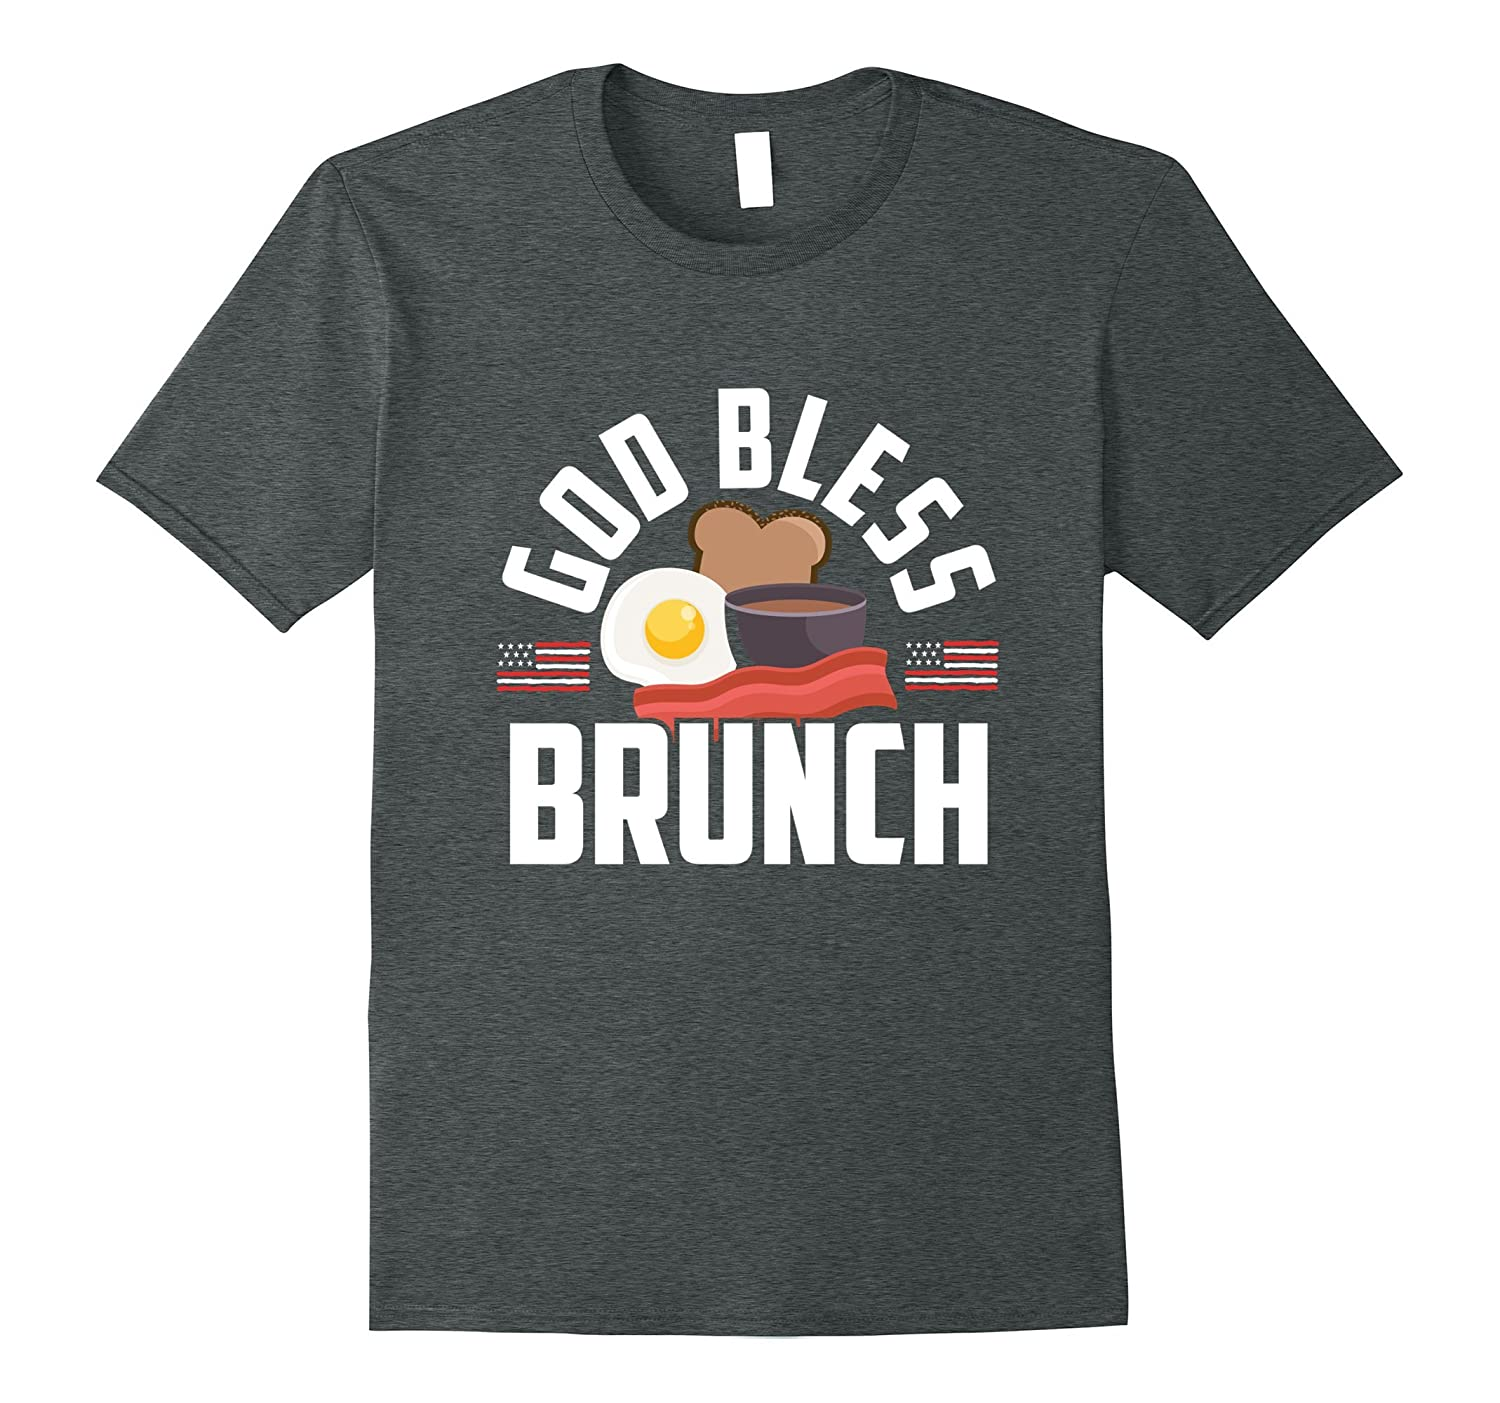 God Bless Brunch And Bacon All American Meal T-Shirt-Vaci